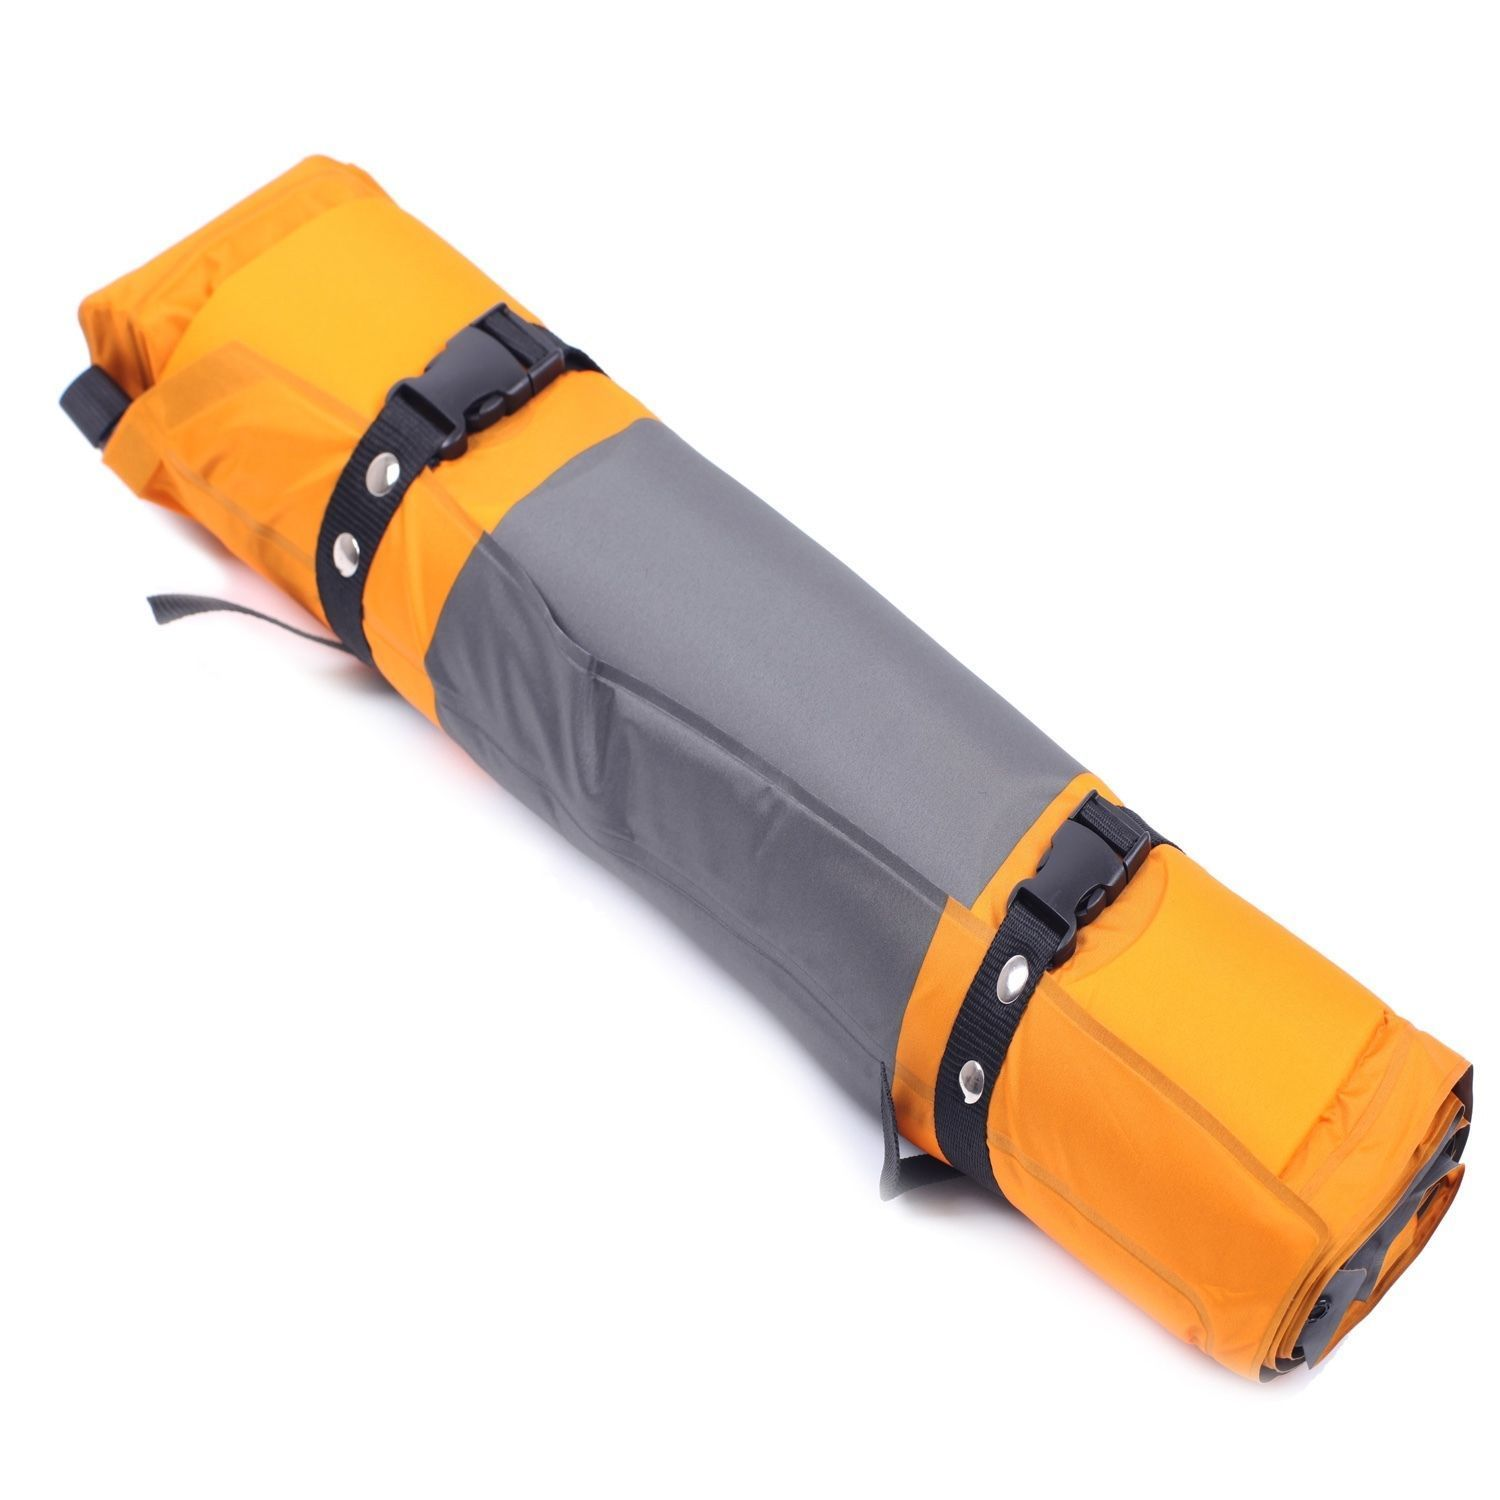 Air bed for camping - Double Self Inflating Pad Sleeping Mattress Air Bed